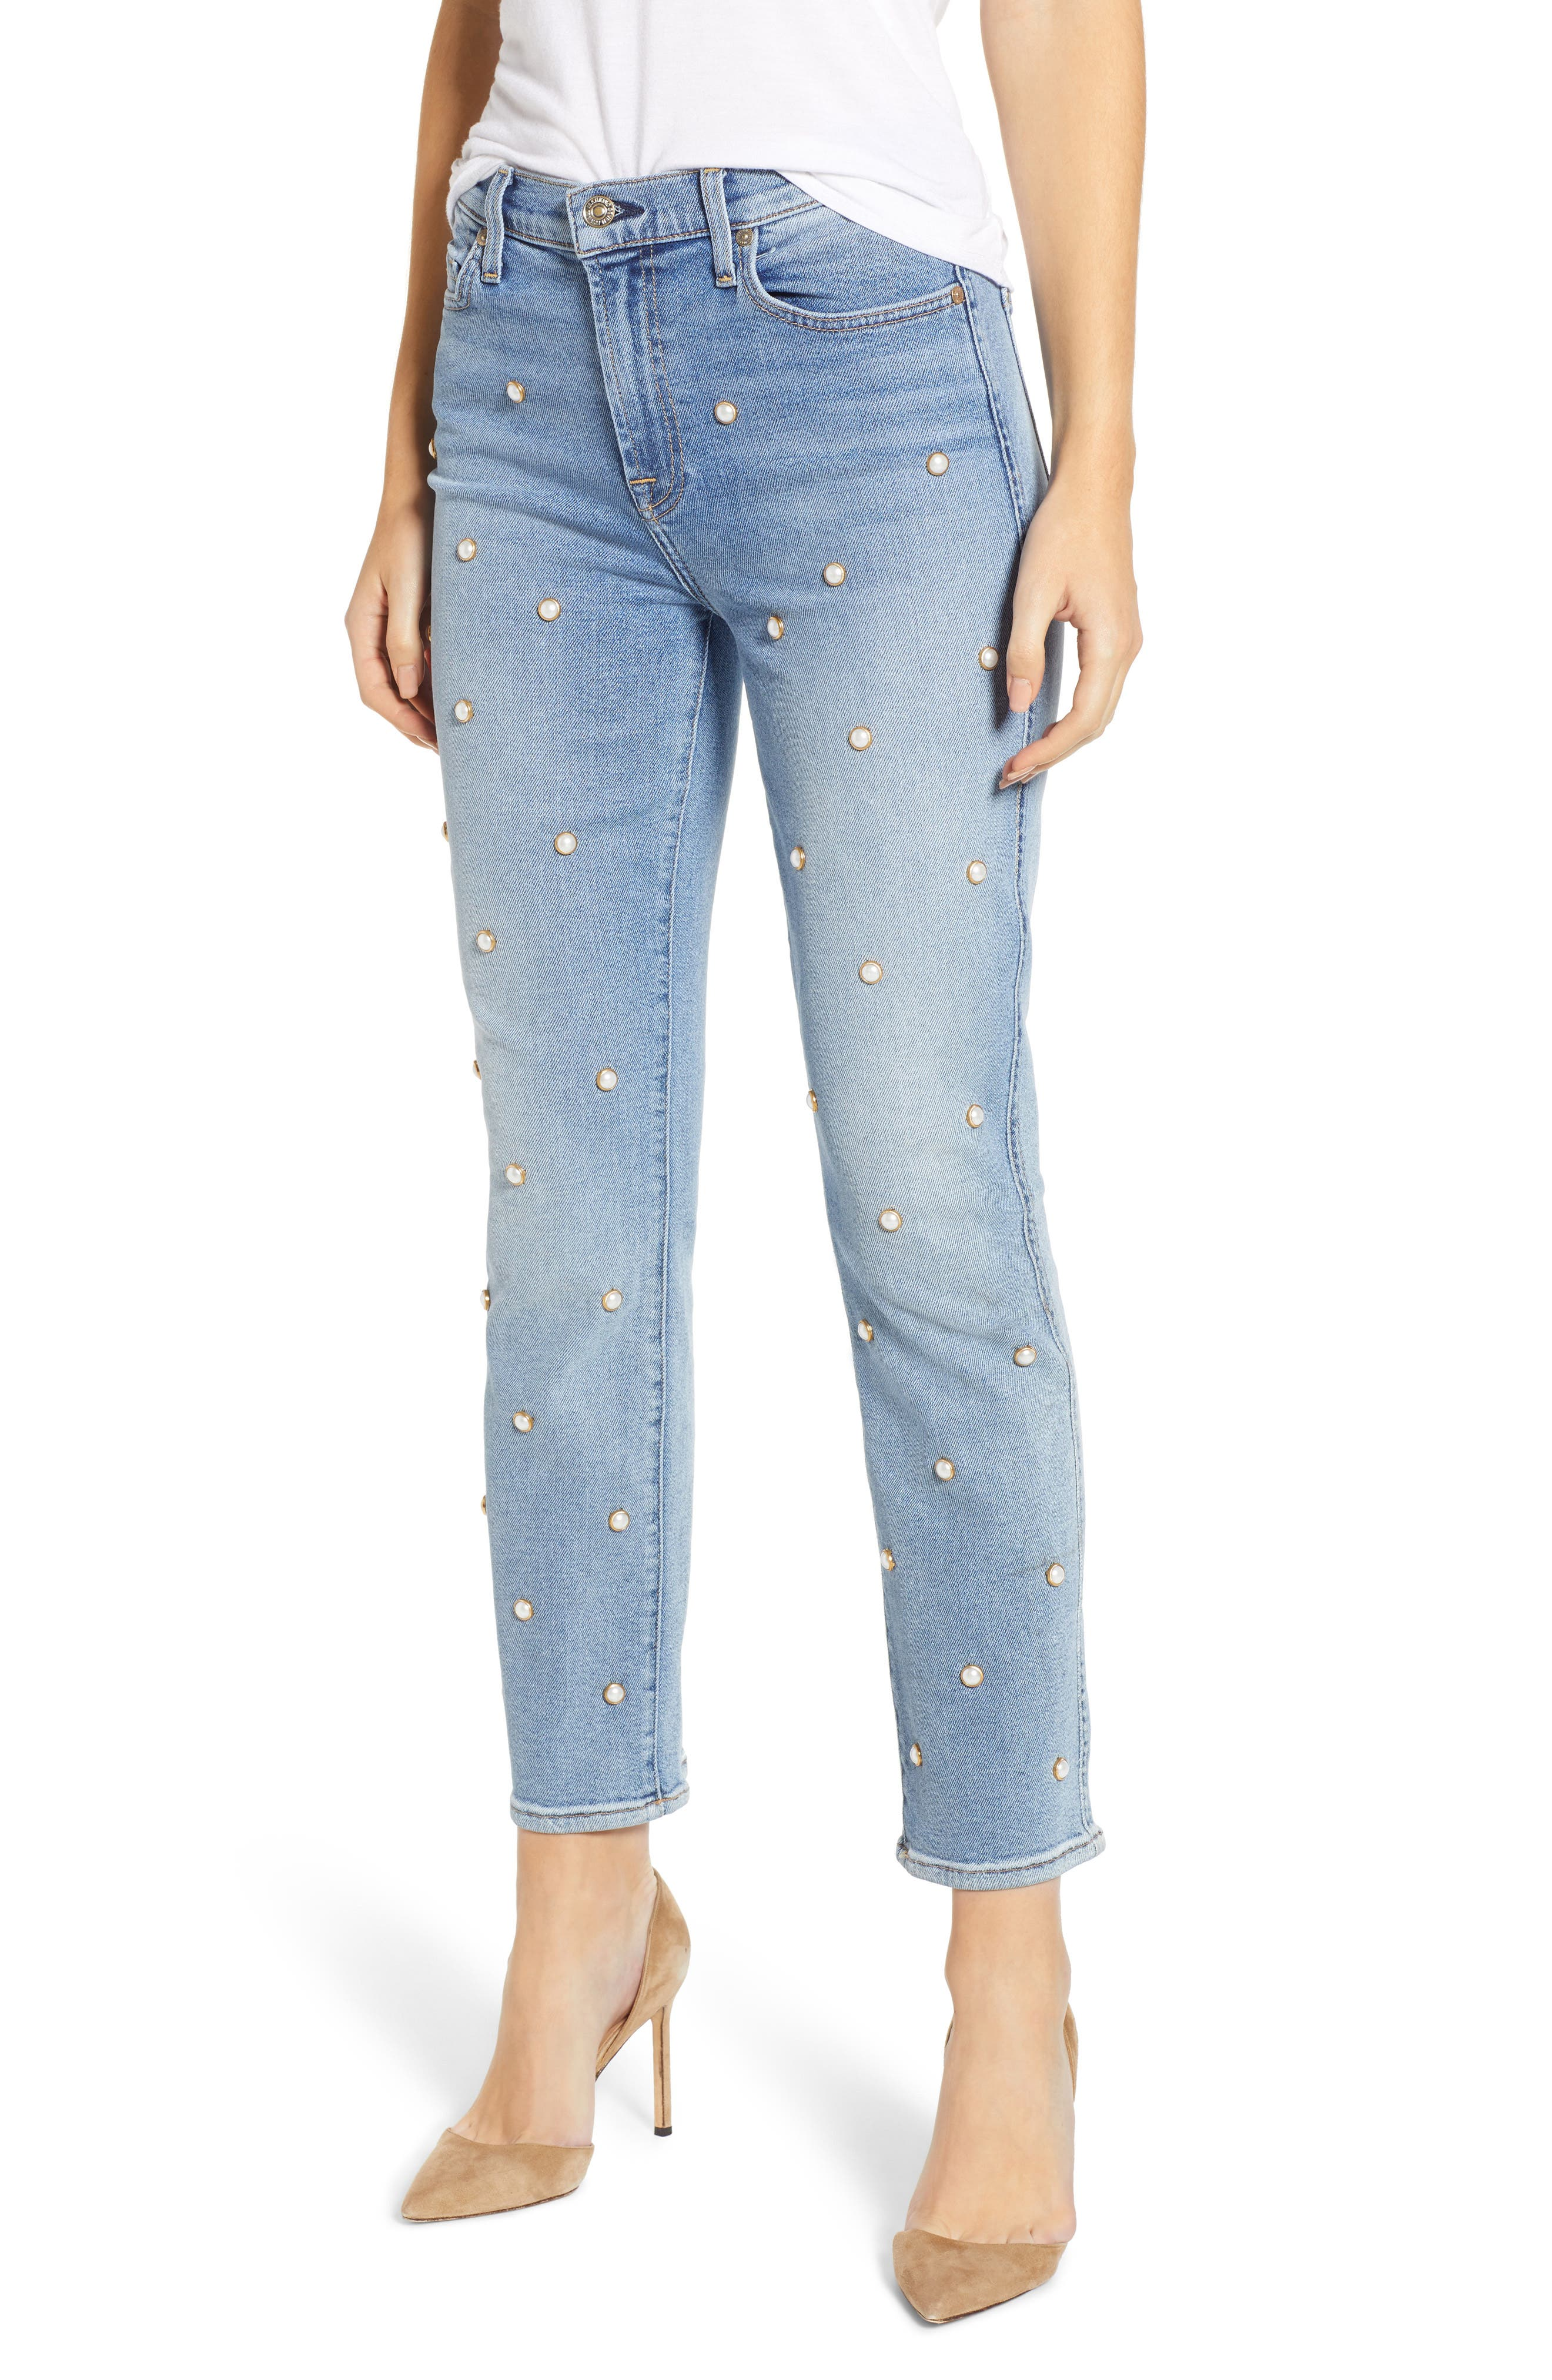 7 FOR ALL MANKIND<SUP>®</SUP>, Edie Faux Pearl Detail Ankle Jeans, Main thumbnail 1, color, LUXE VINTAGE FLORA